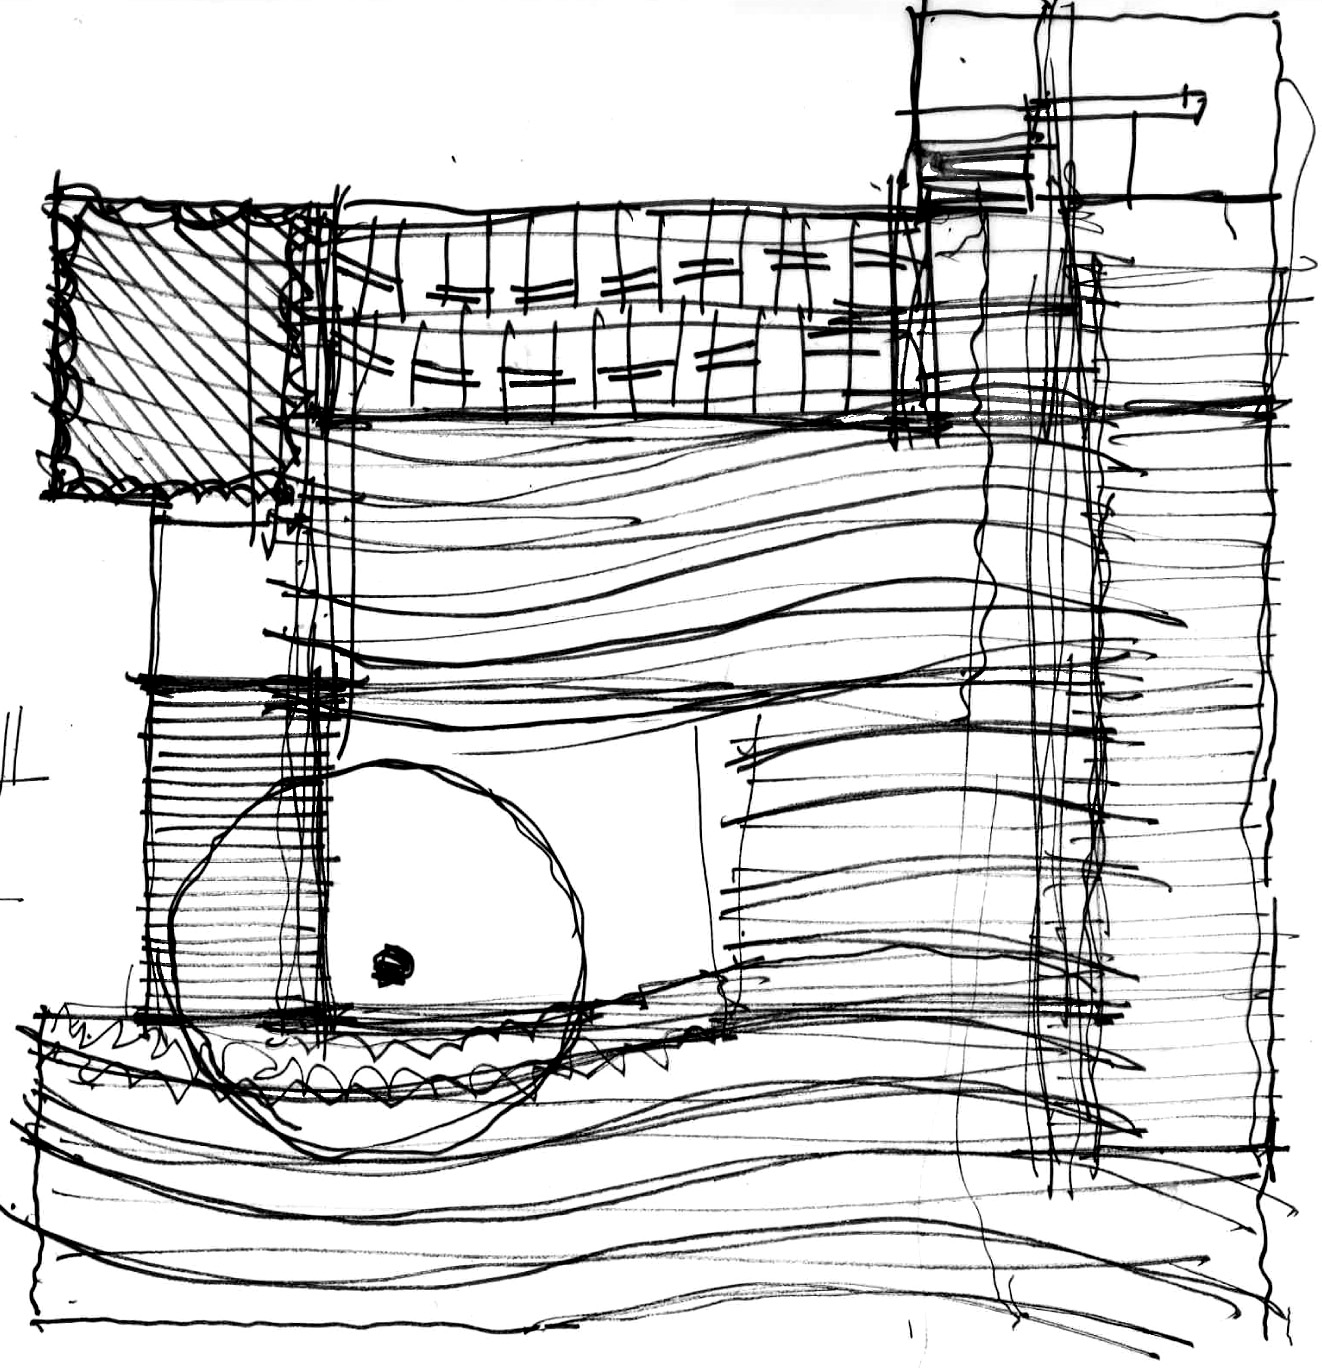 plan_crop-sketch1.jpg